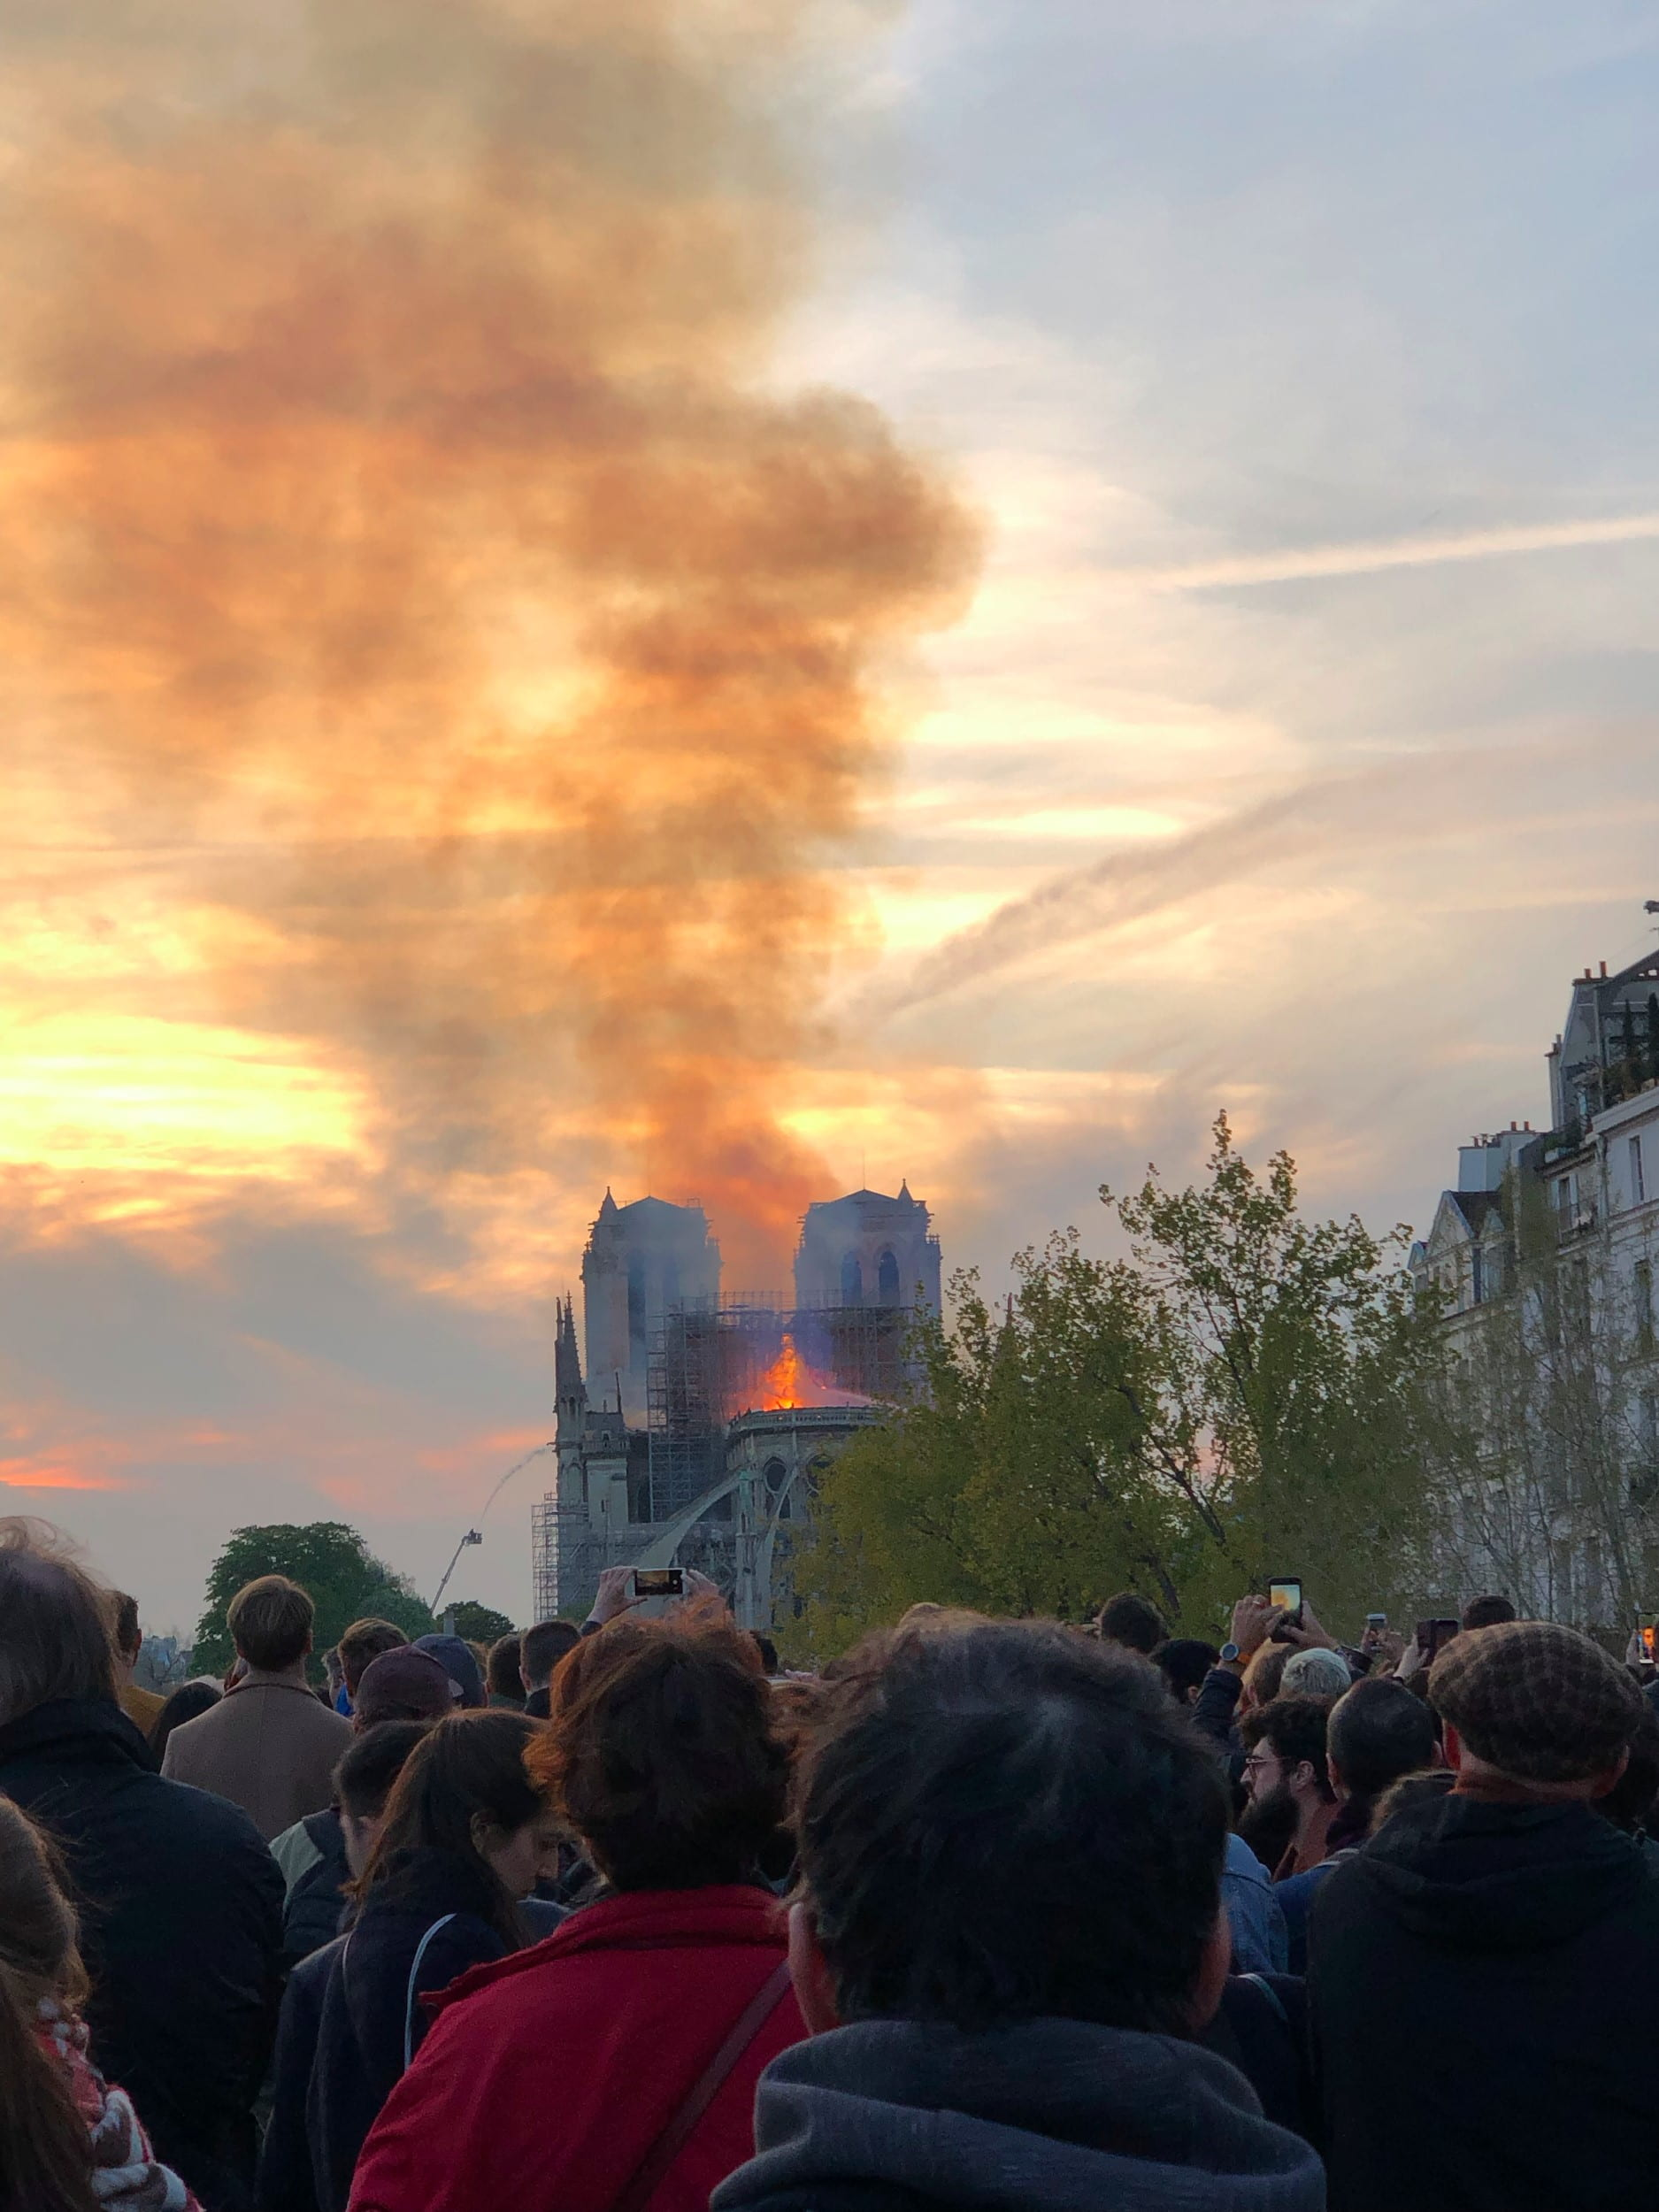 Lots of people watching the Notre Dame in Paris burn, flames and lots of smoke in the background